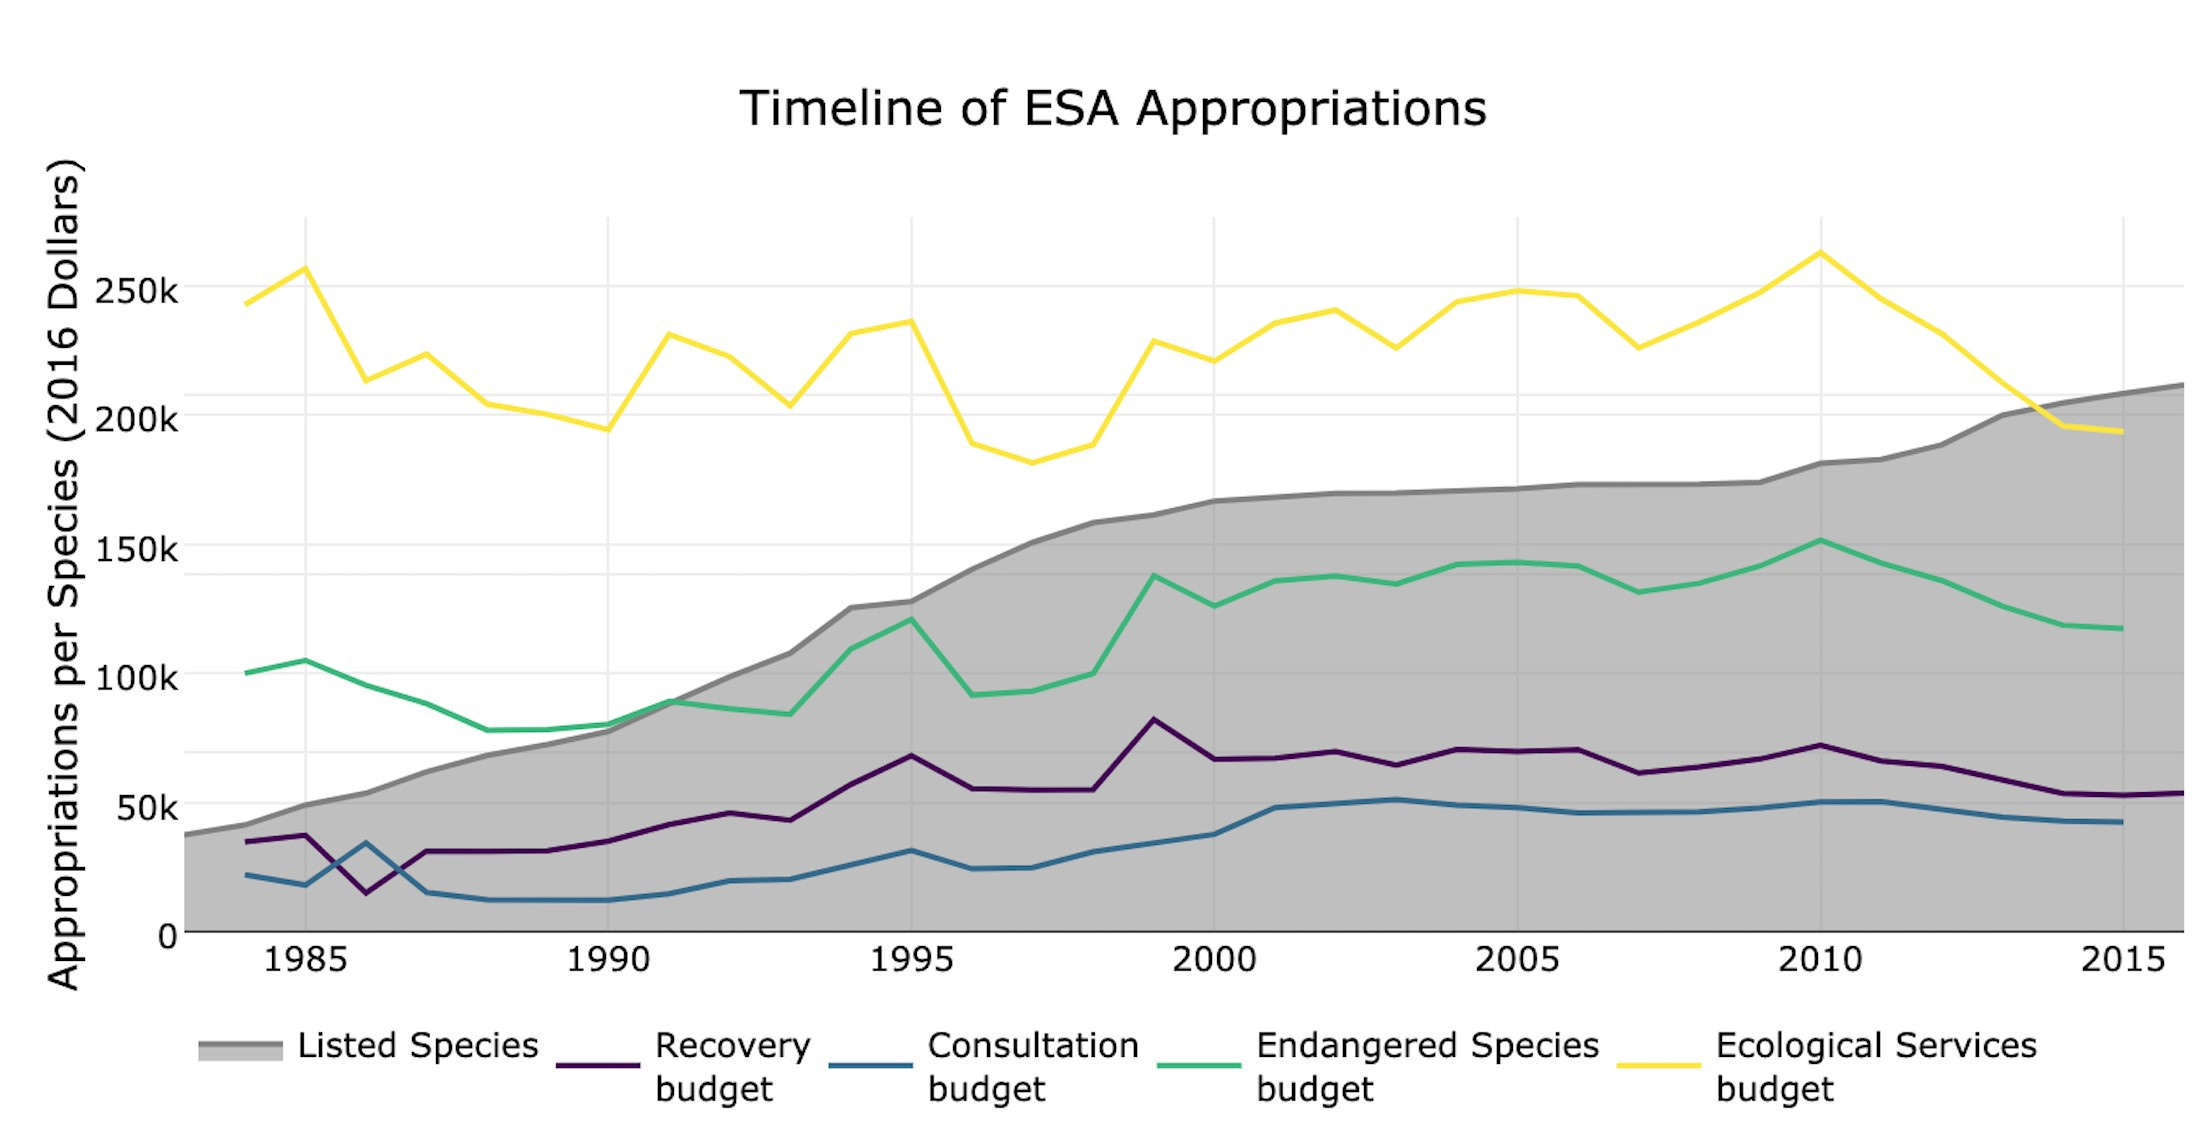 Timeline of ESA Appropriations